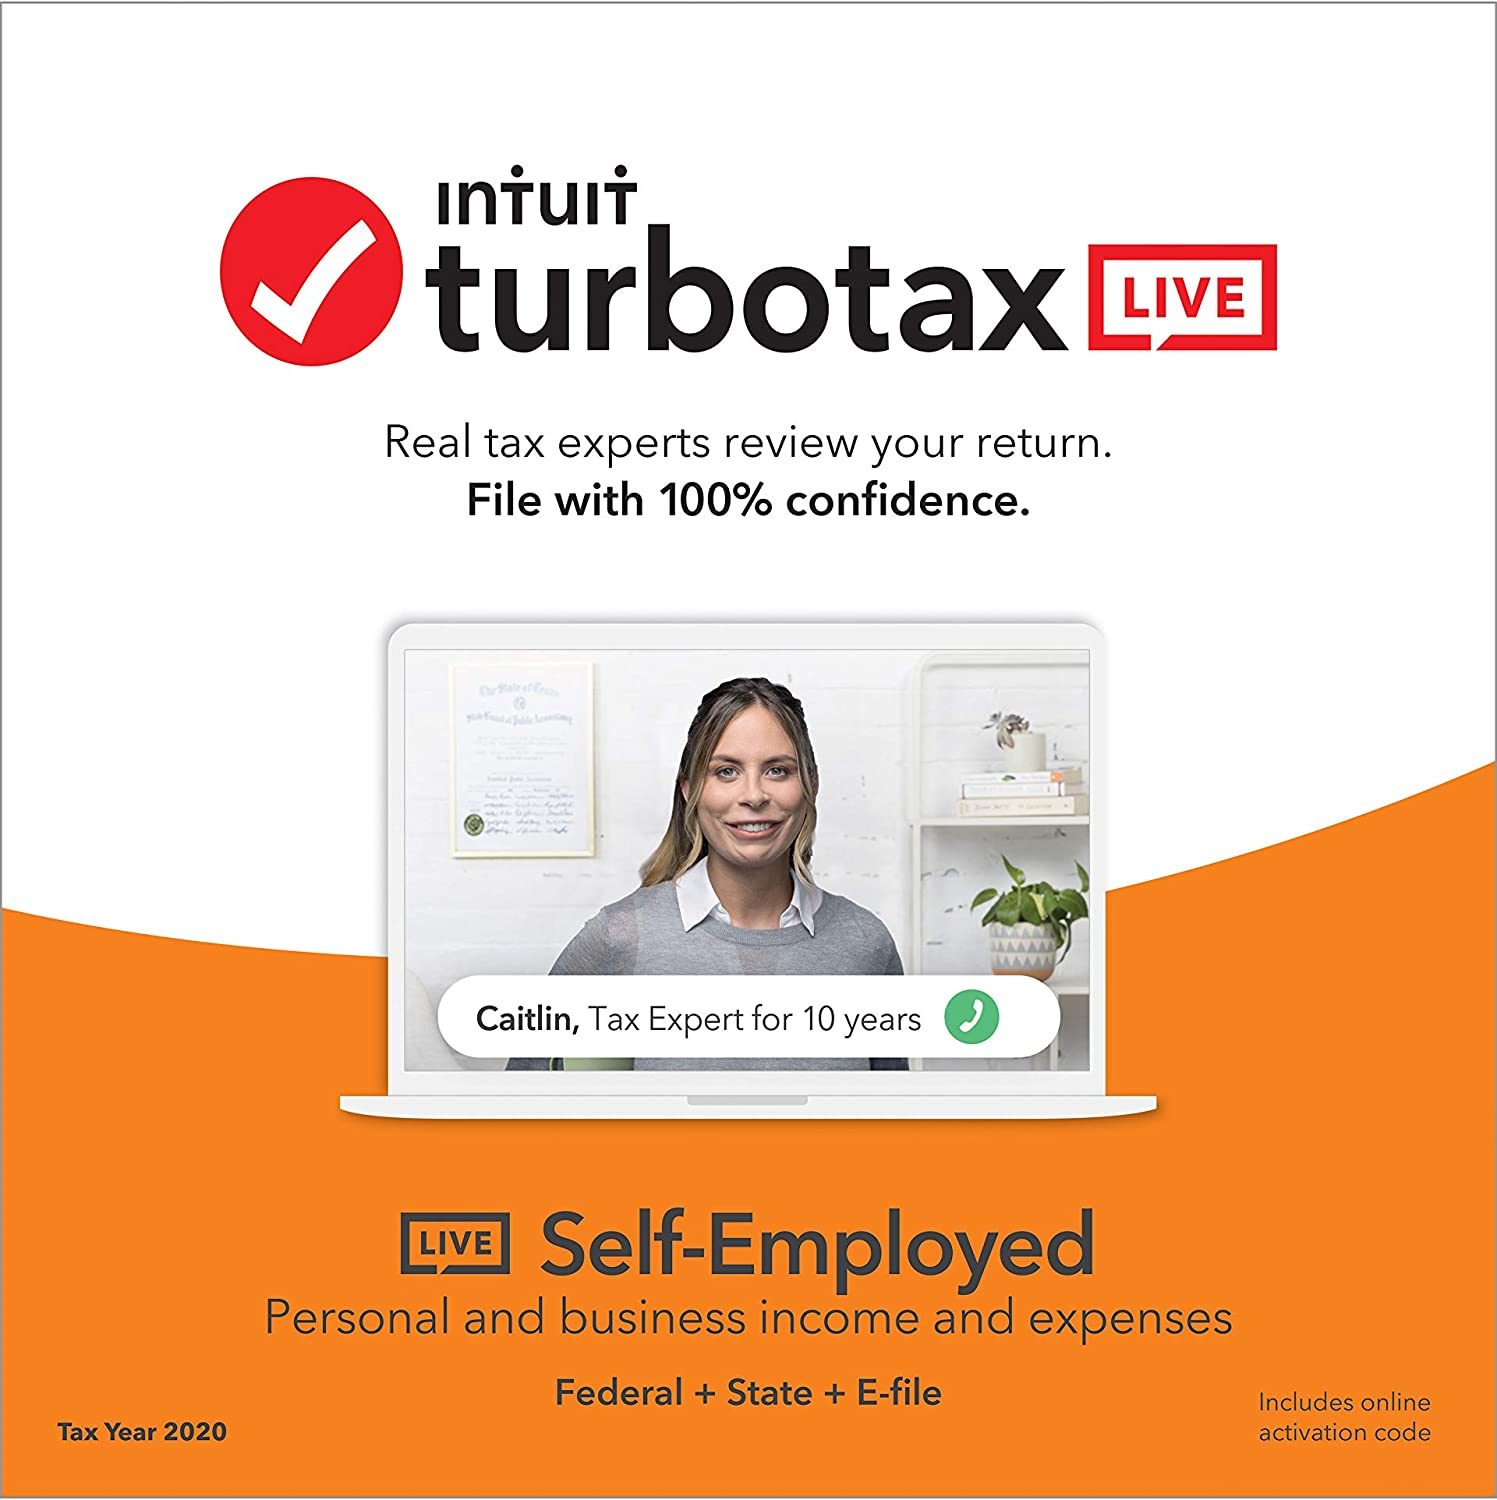 TurboTax LIVE Self-Employed 2020 (Browser-Based version includes Federal, State, both e-files, and unlimited tax advice from real tax experts)